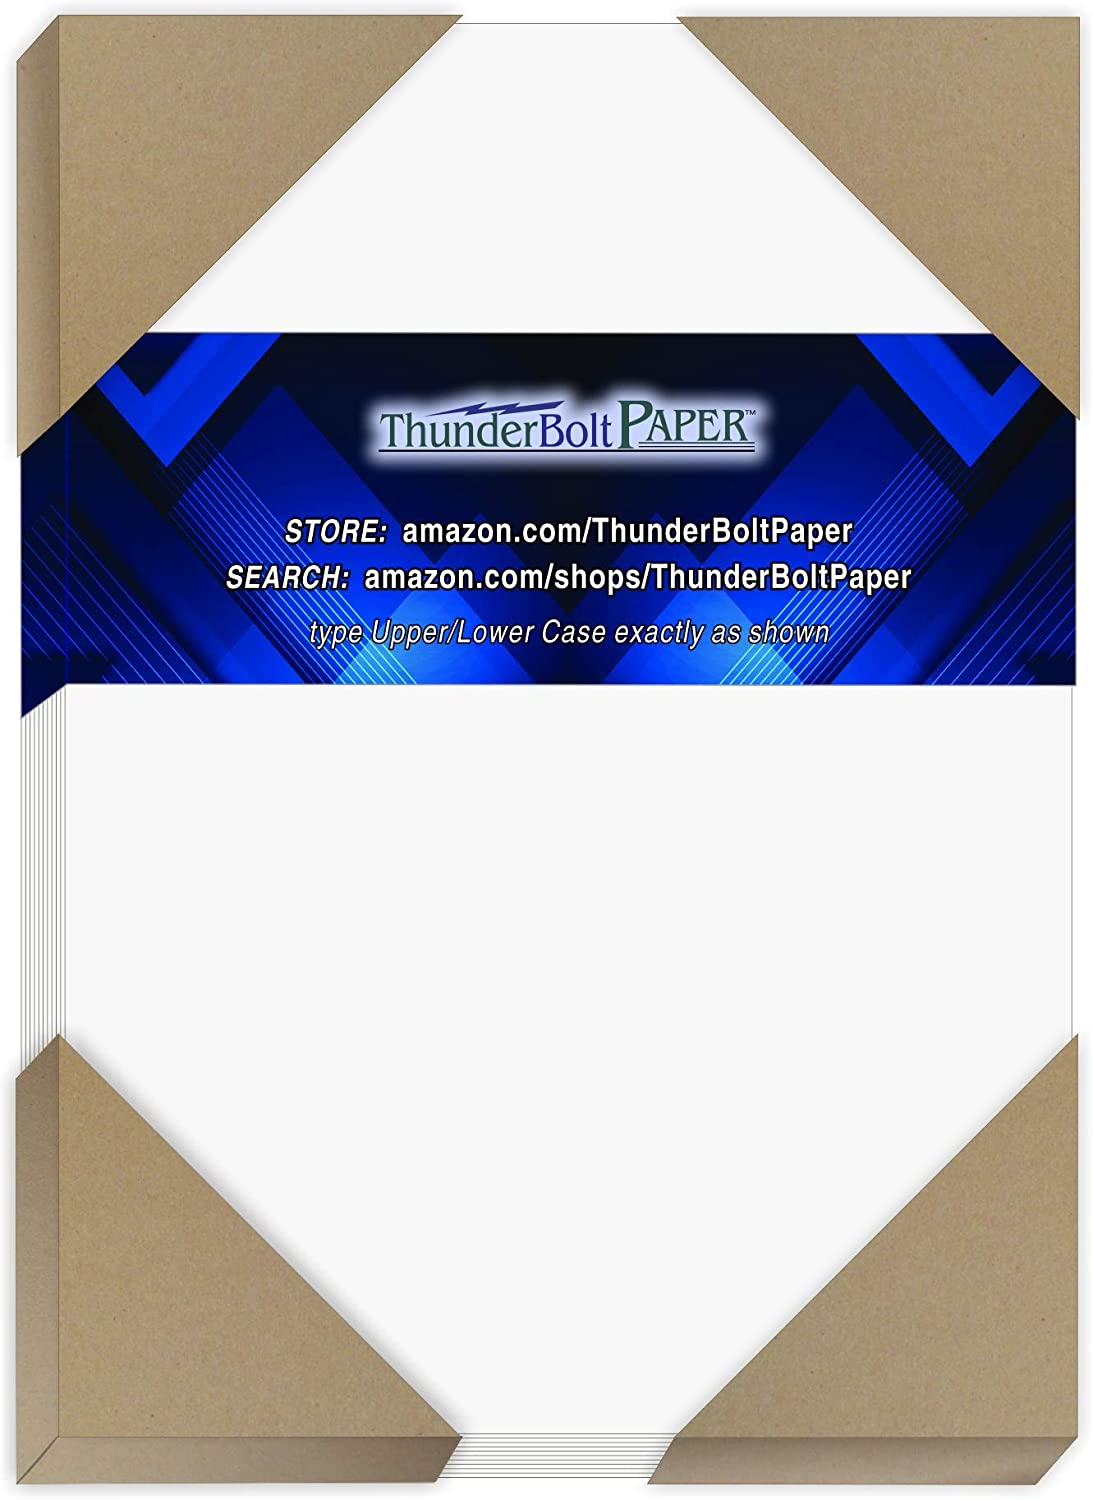 65 Pound Light Weight Cardstock 5.5X8.5 Inches Statement Size Quality Printable Smooth Surface 100 Bright Golden Yellow 65lb Cover|Card Paper 5.5 X 8.5 Half Letter